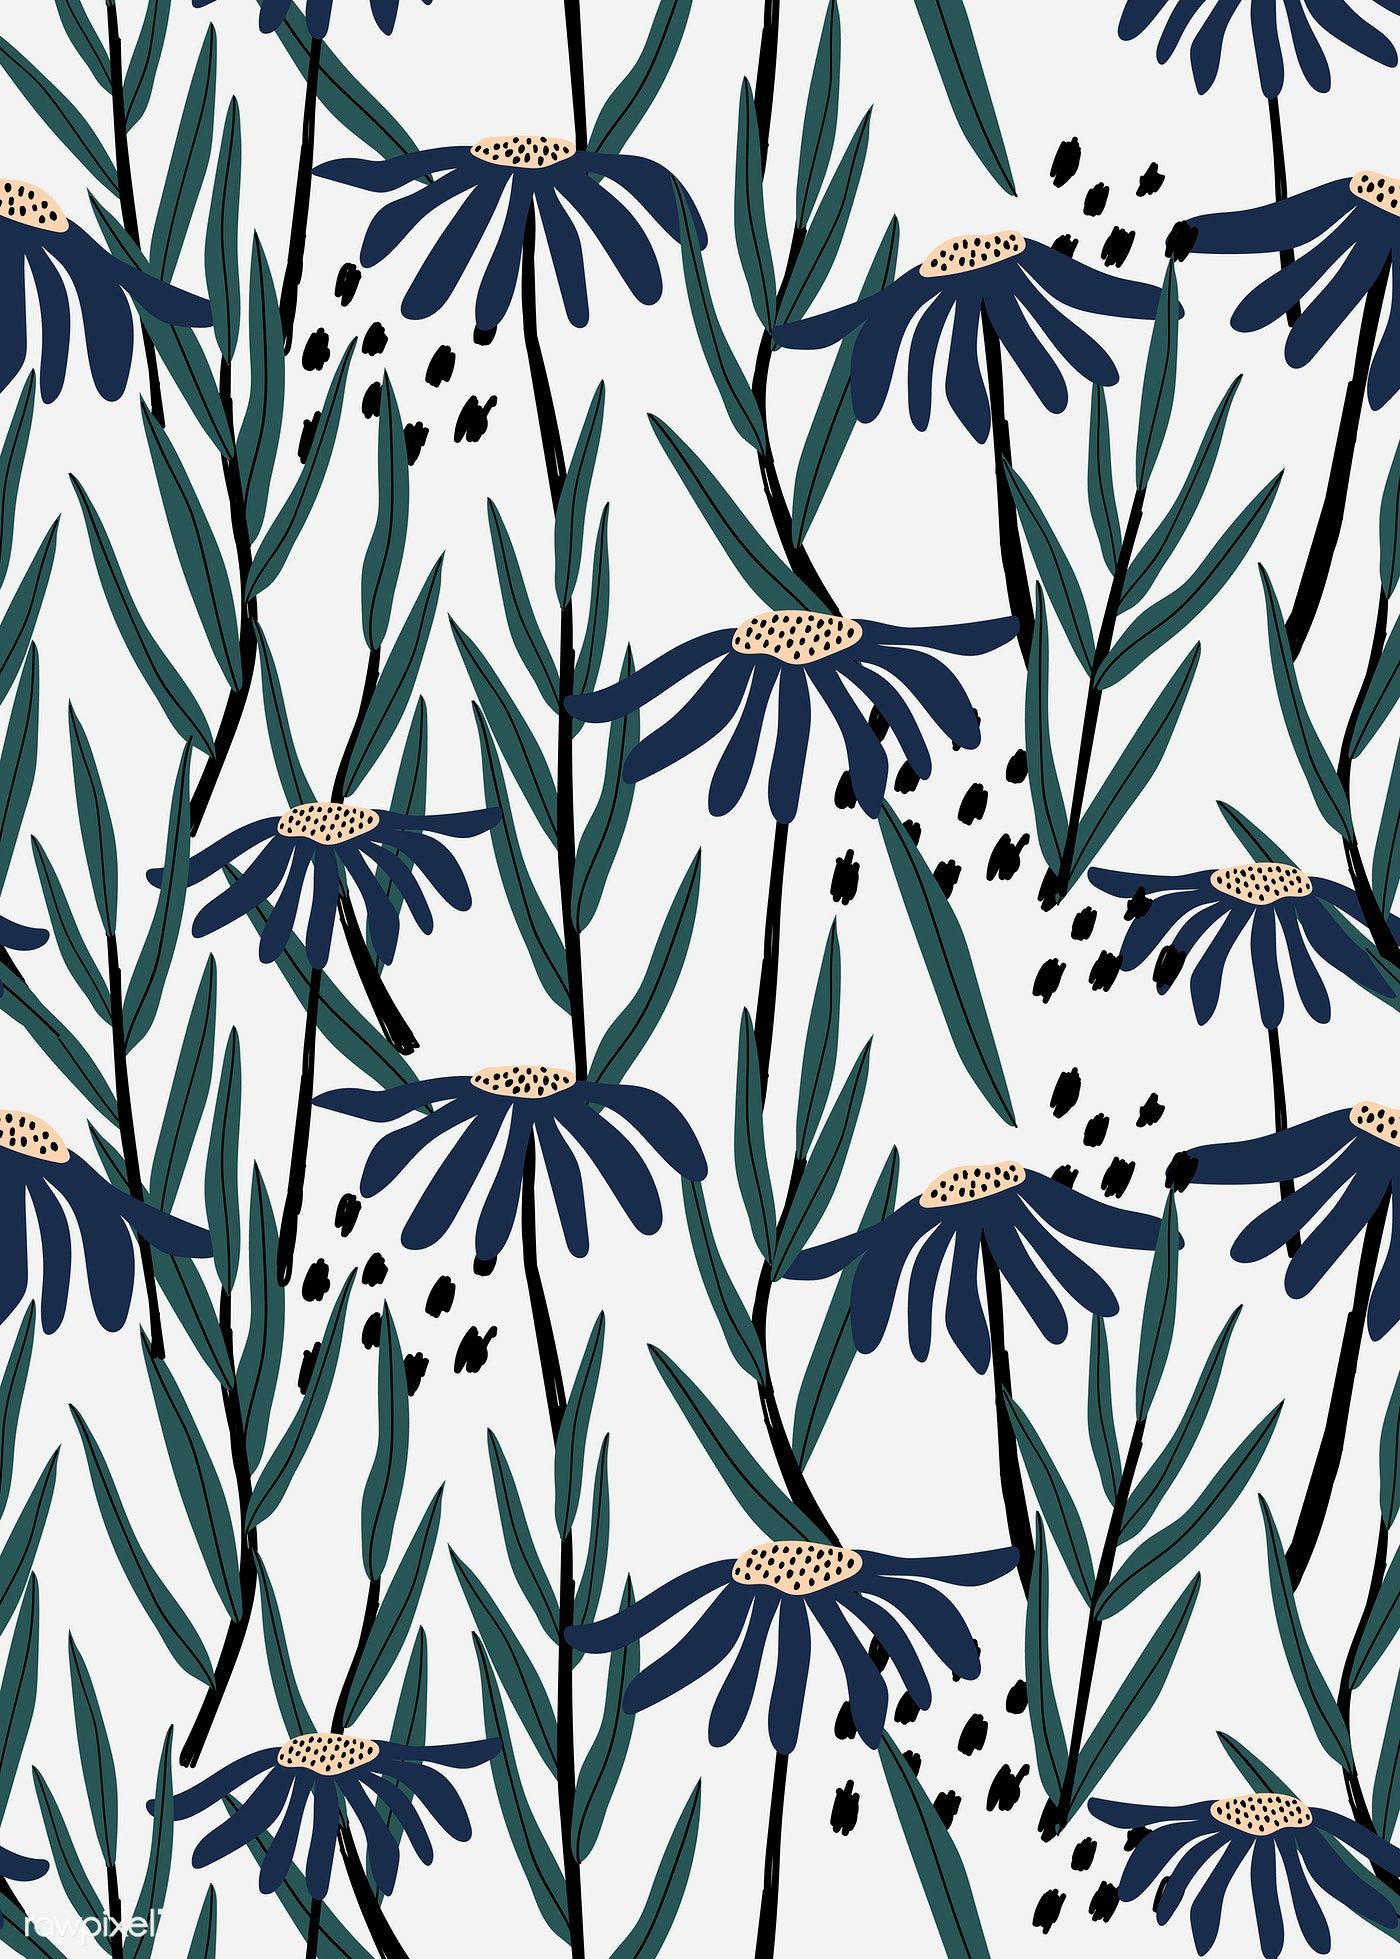 Blue daisy patterned white background vector   premium image by rawpixel.com